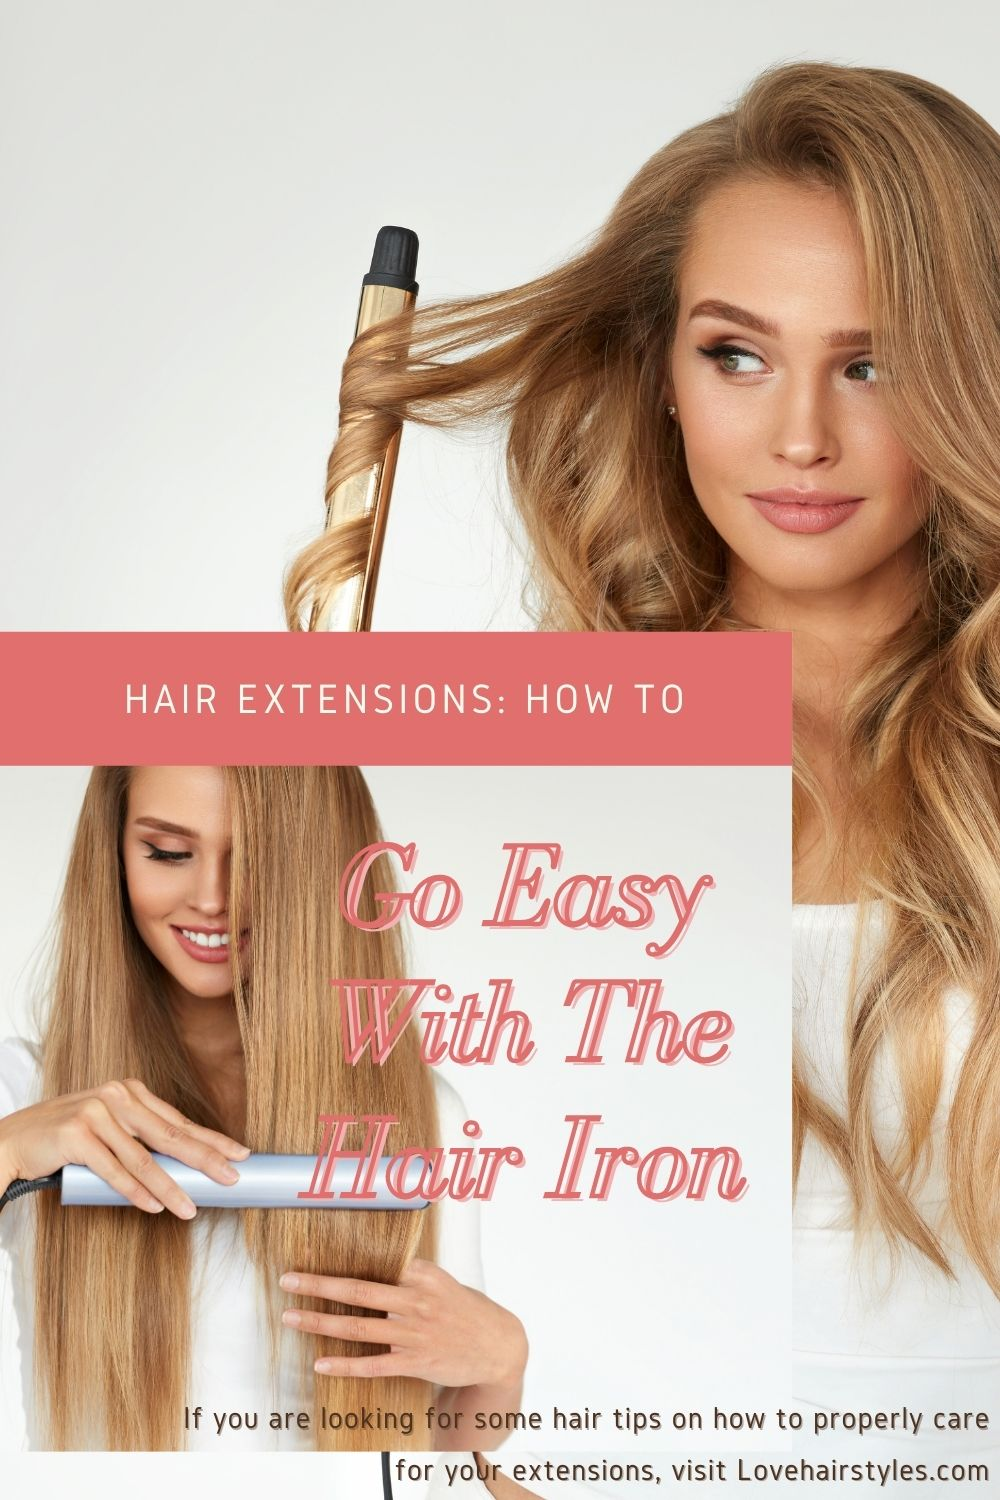 Go Easy With The Flat Iron With Hair Extensions